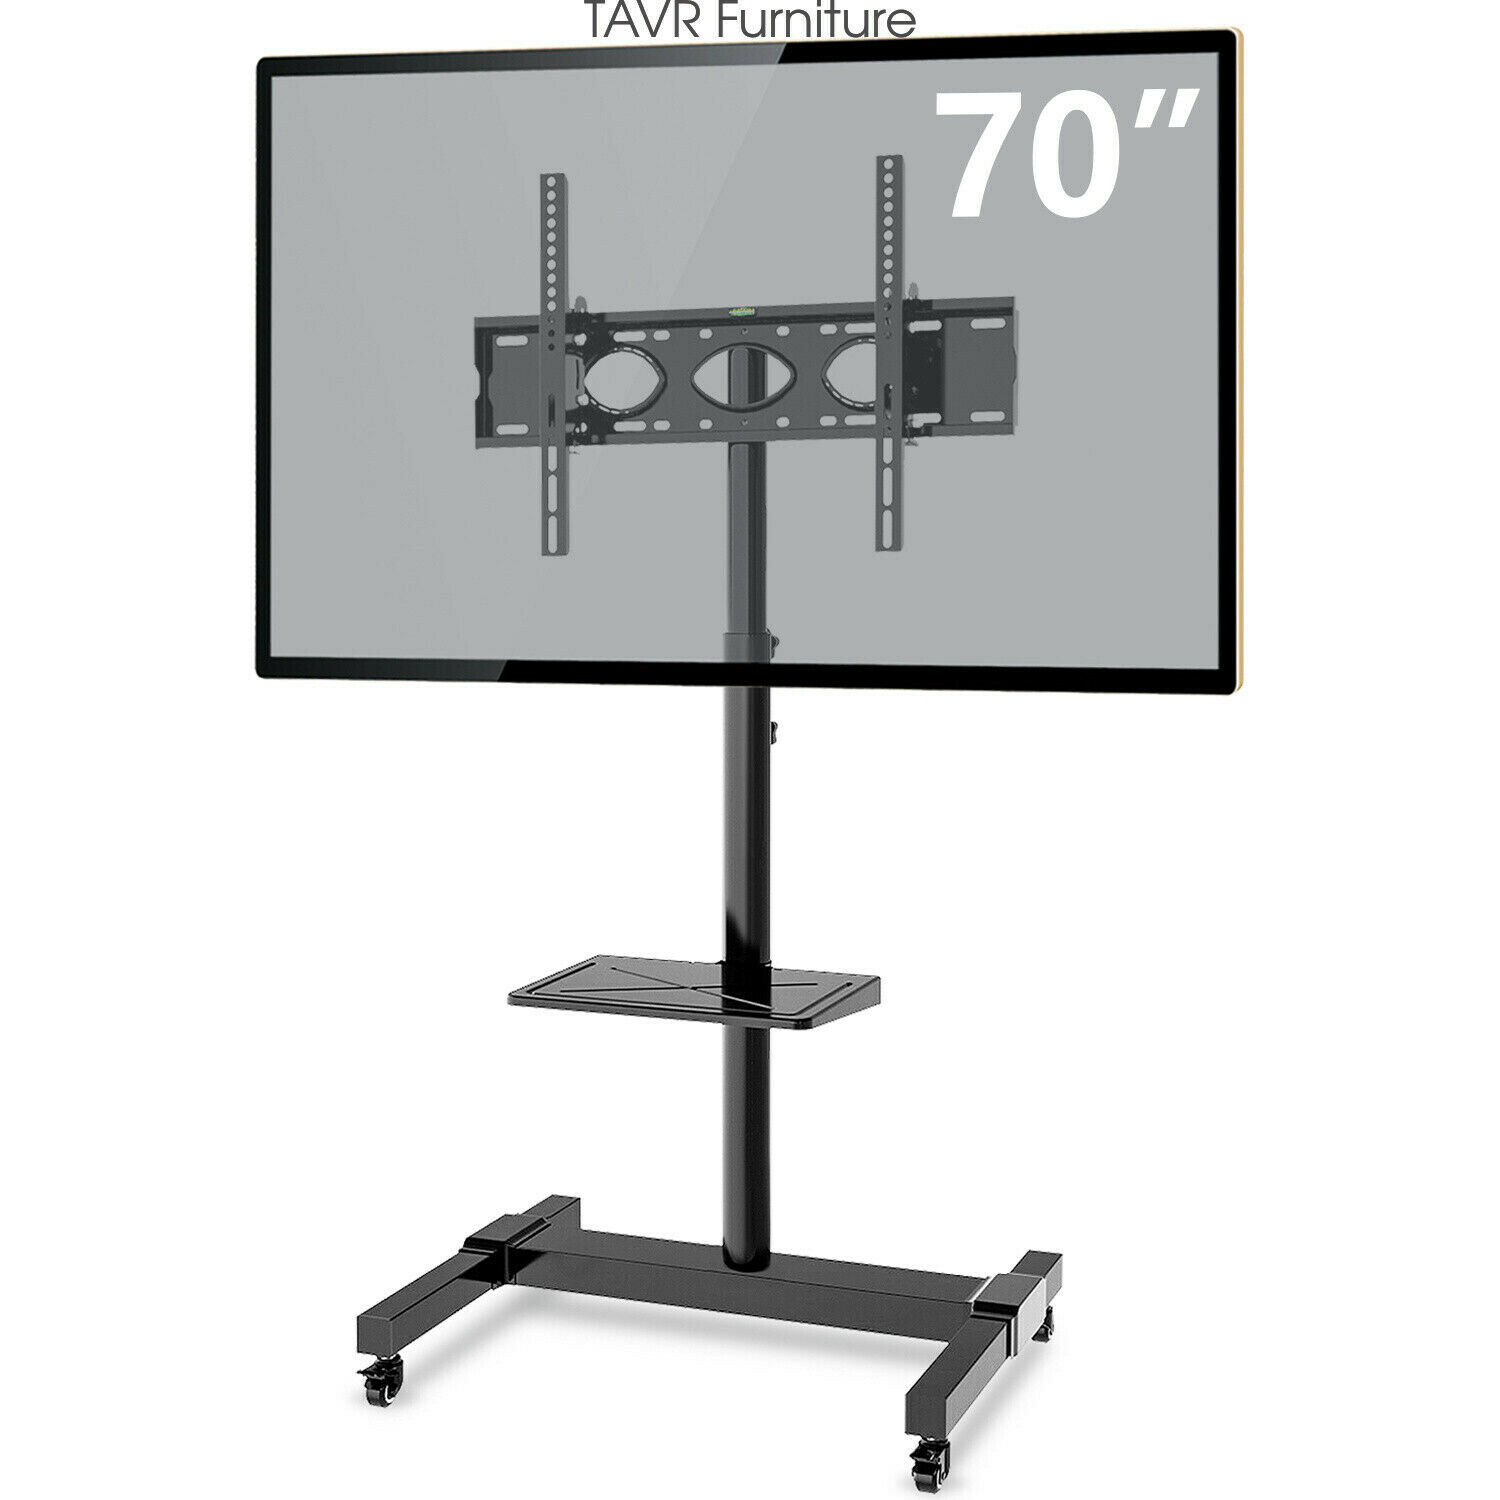 Tall Mobile Tv Stand Wheels Height Tiendamia Com